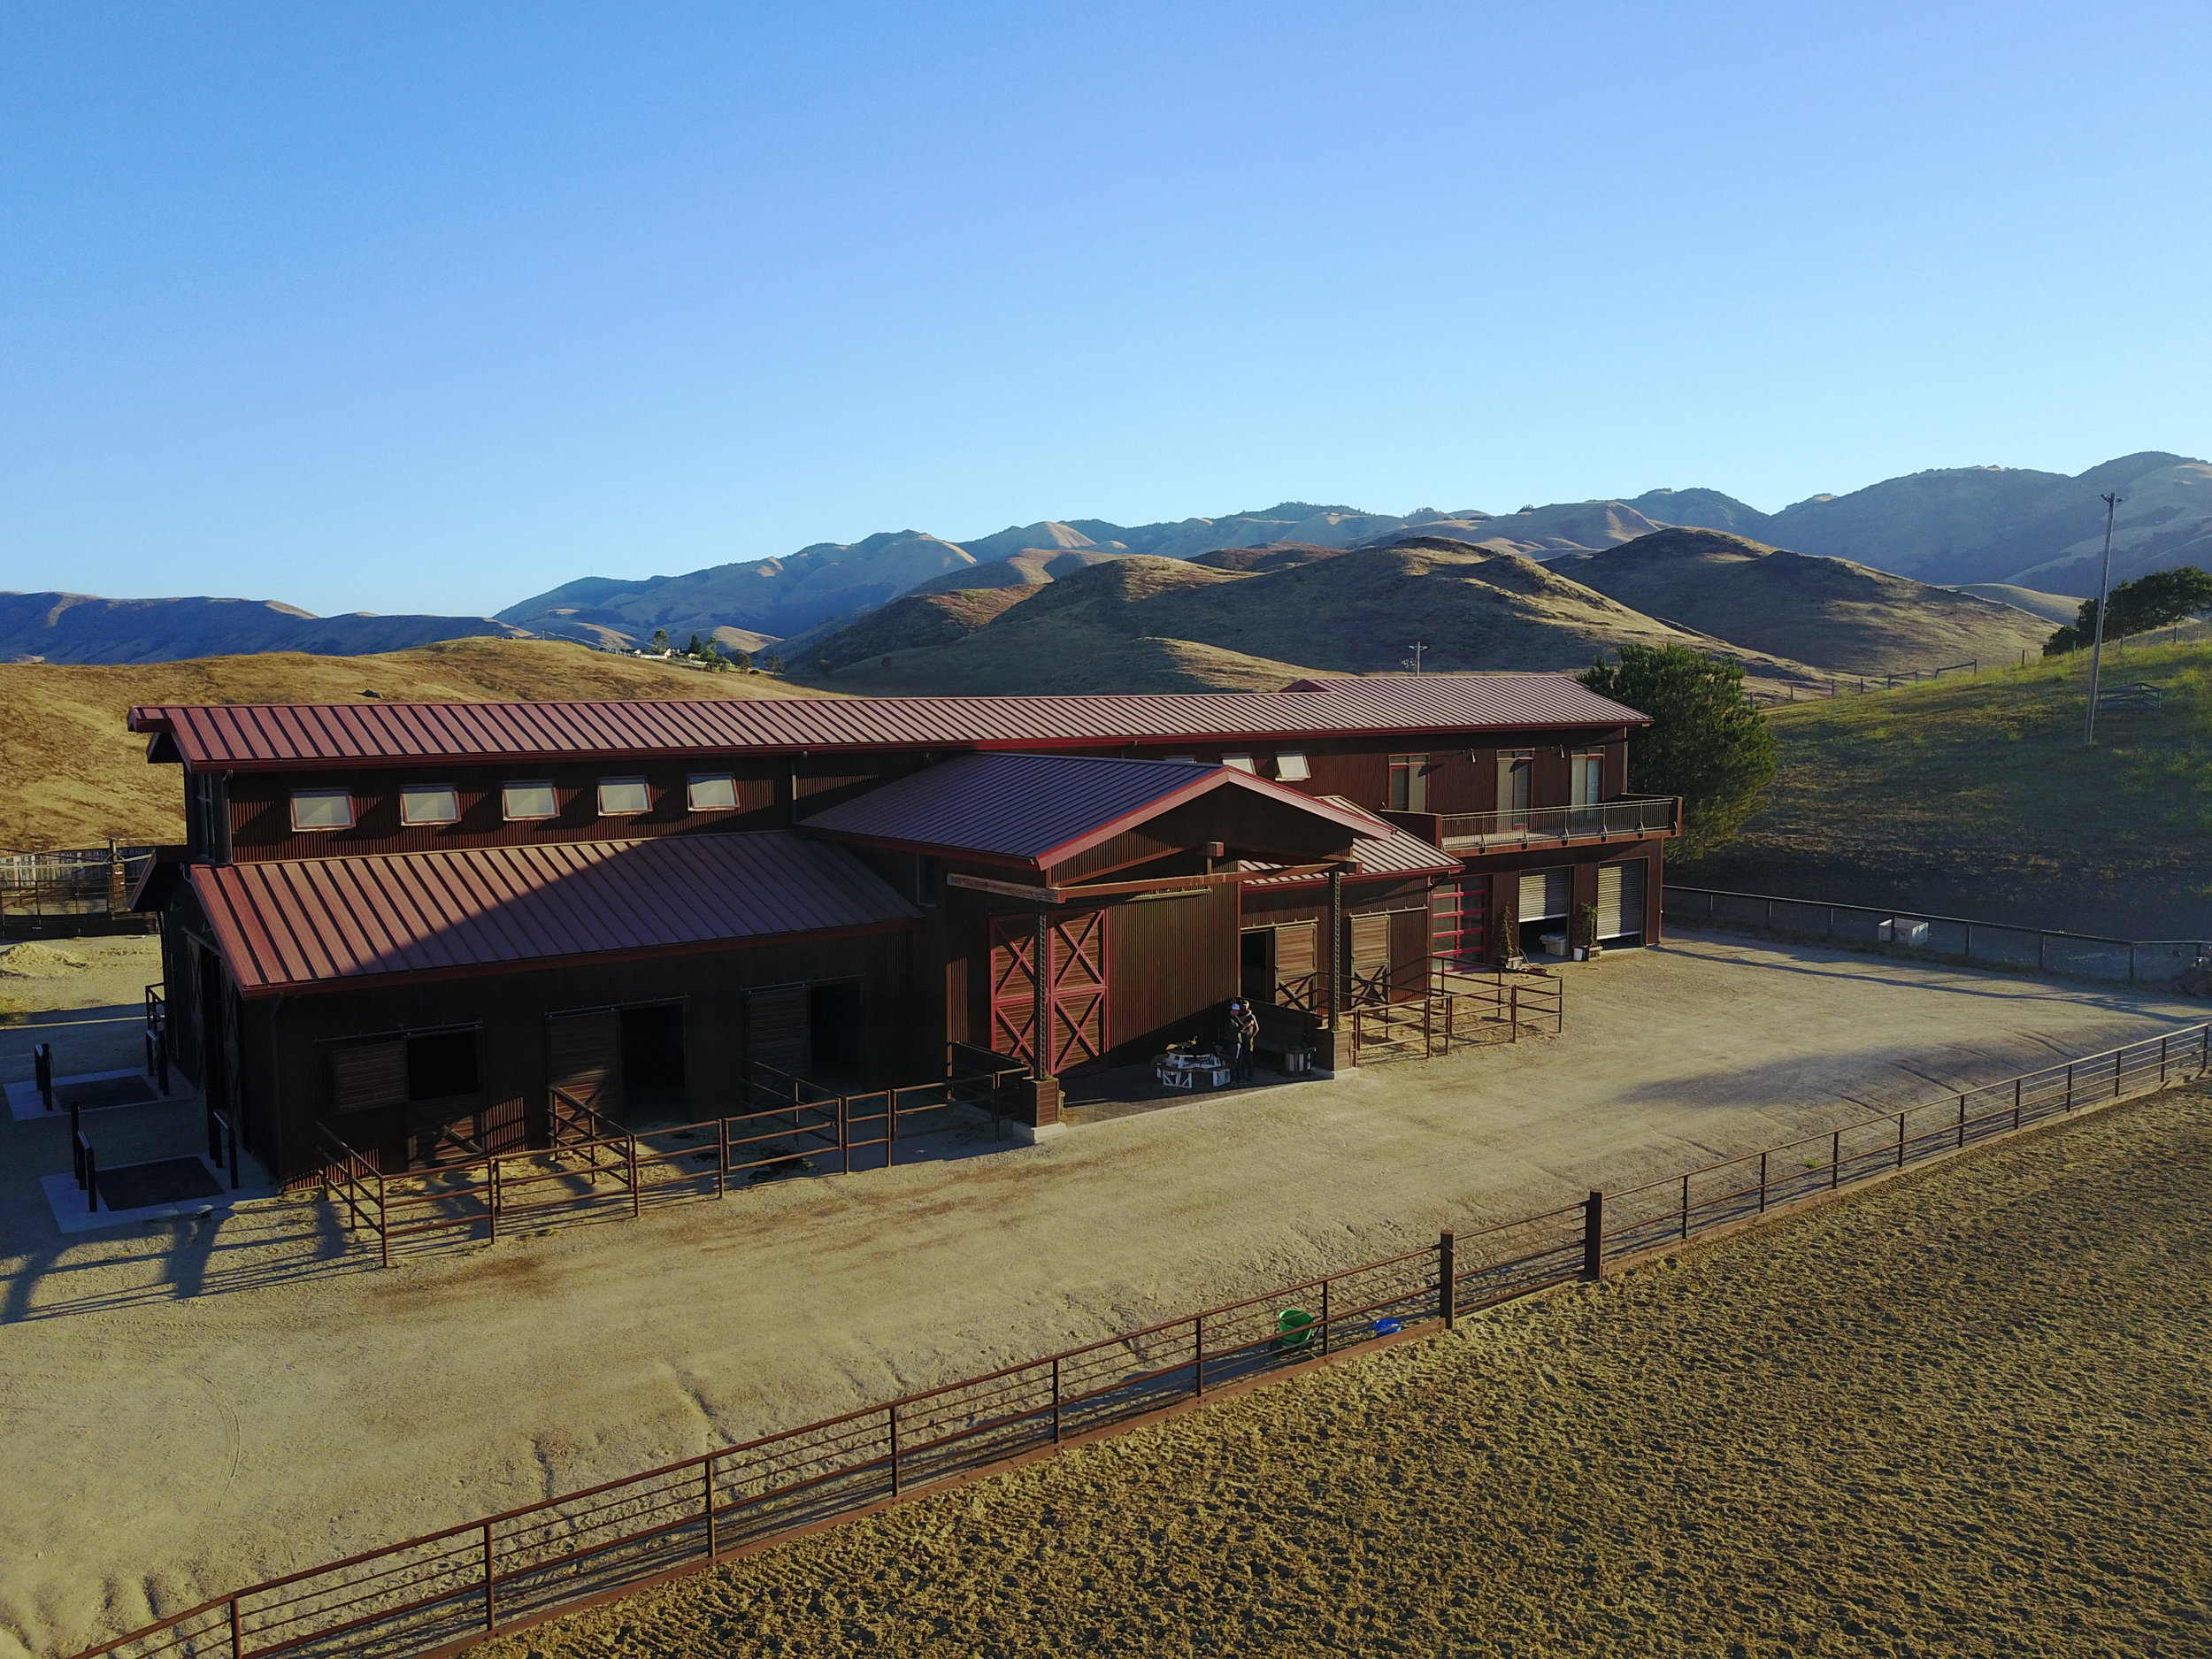 HOLD YOUR EVENT HERE - The FCVC facilities specialize in holding events related to horse and dog health. For more info call 805-427-6404 or email info@fcvcslo.com